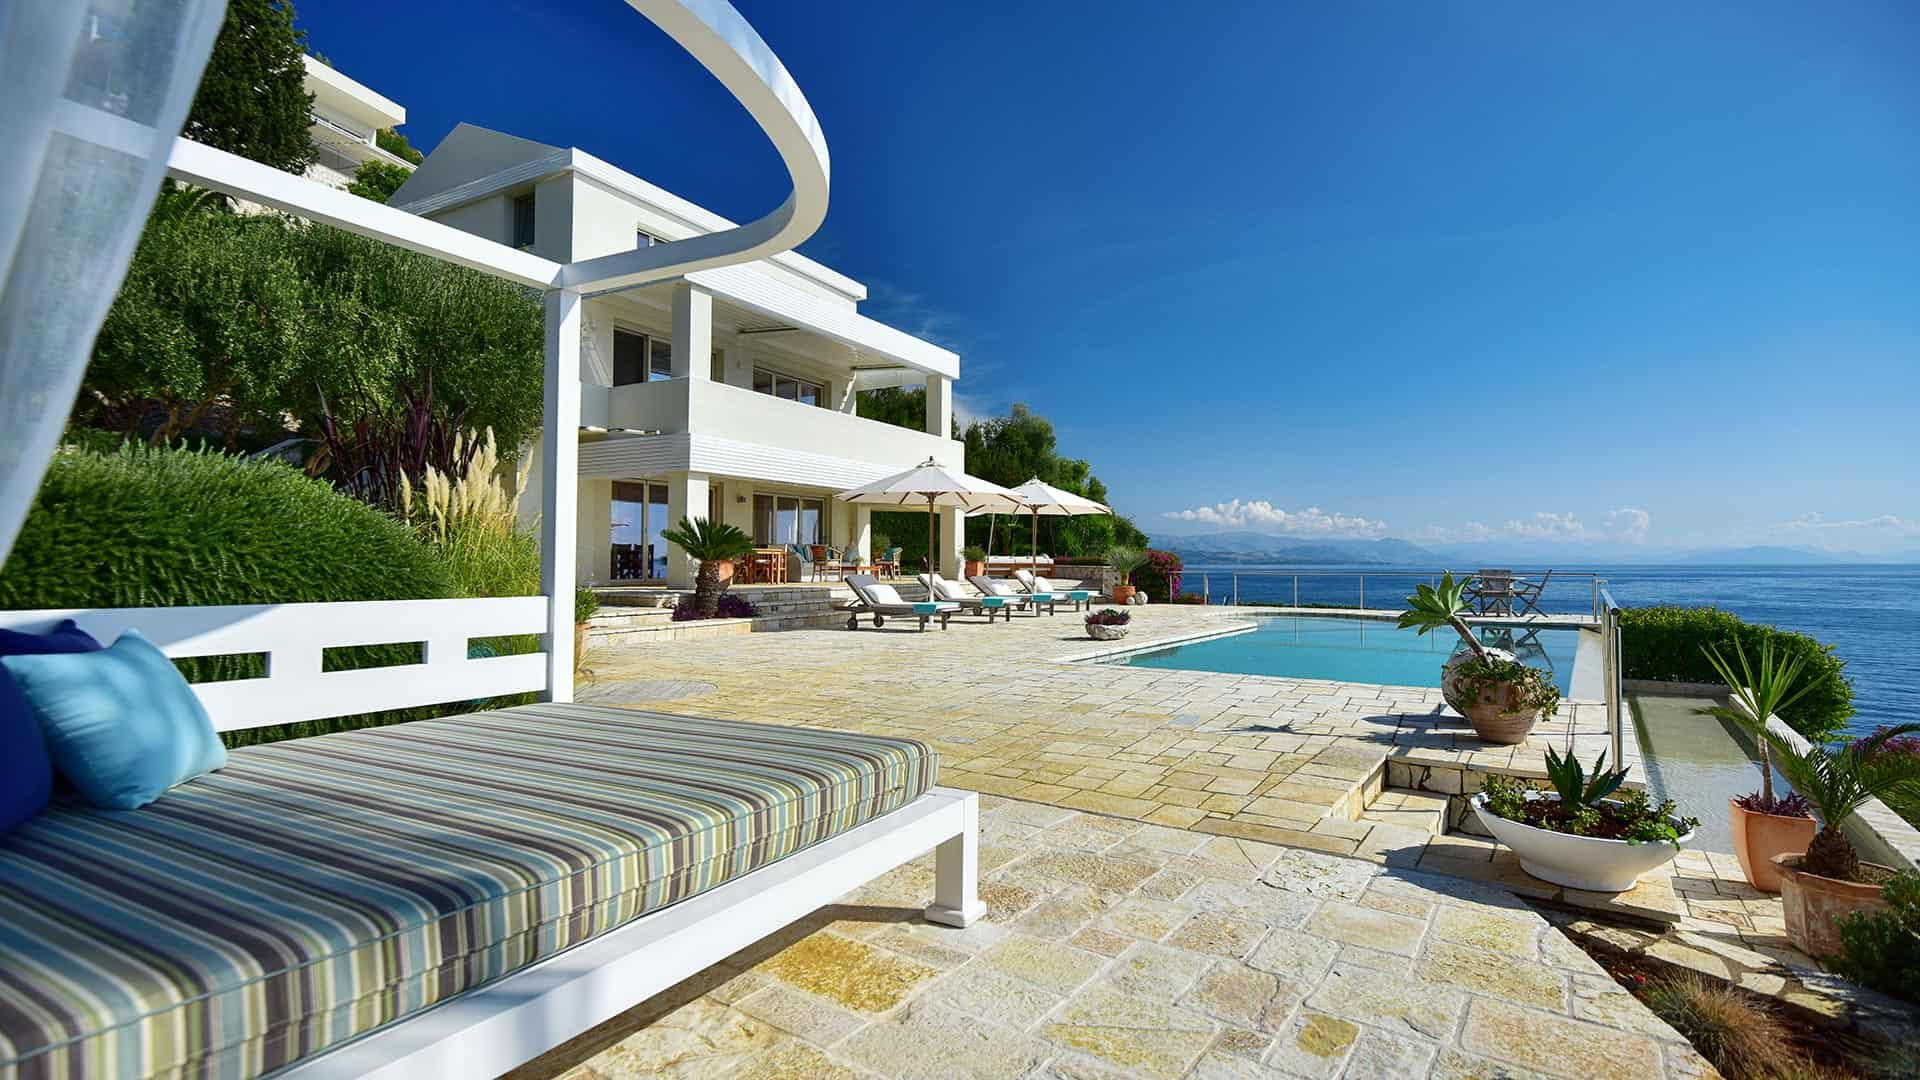 Real Estate & Development Company | HSL Corfu